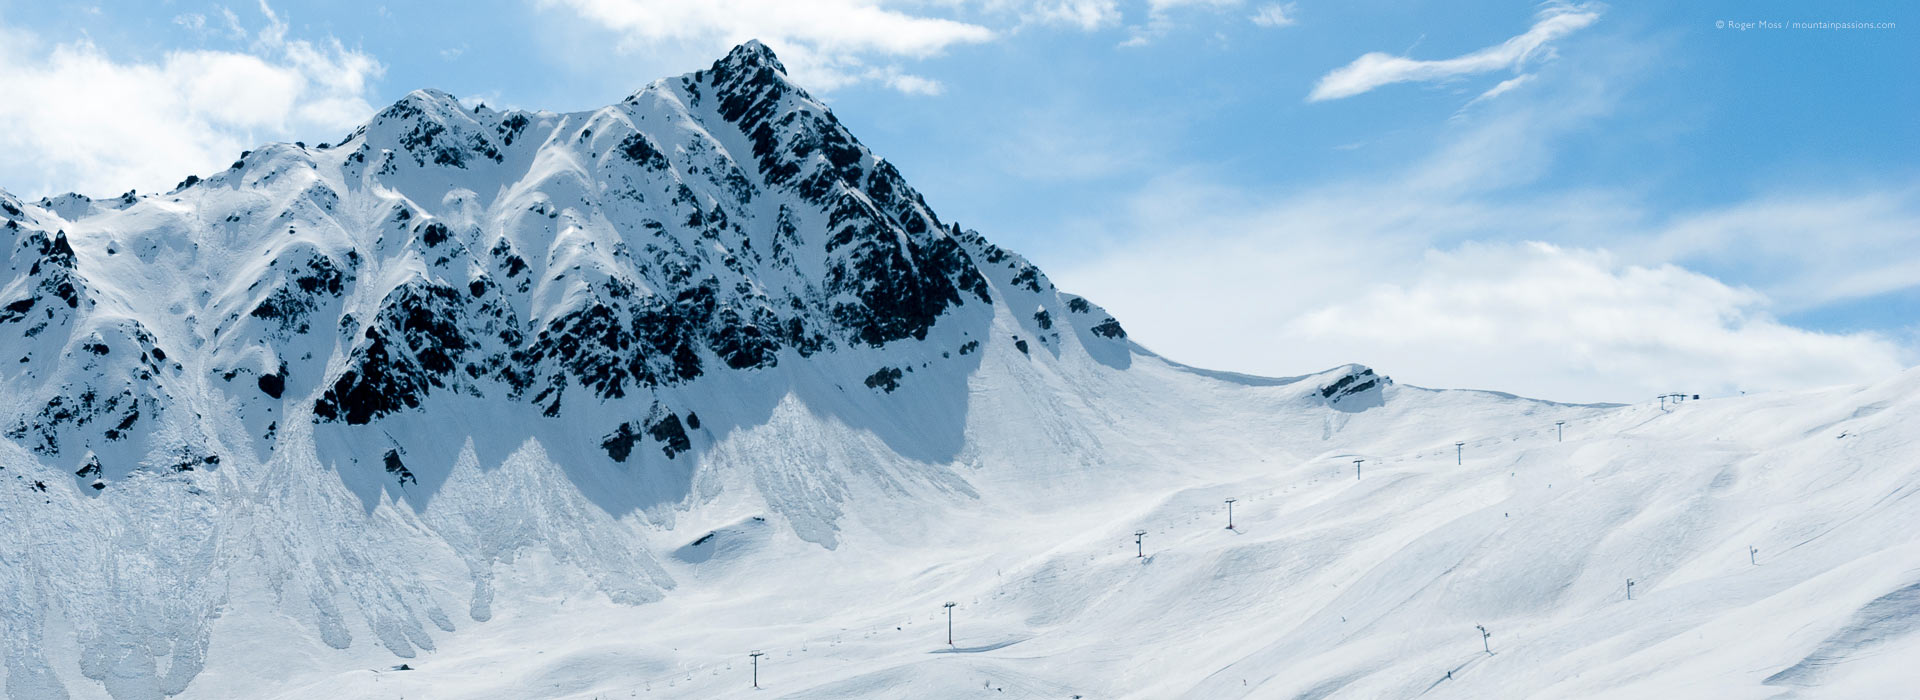 Long view of mountainside with ski lifts at Les Contamines